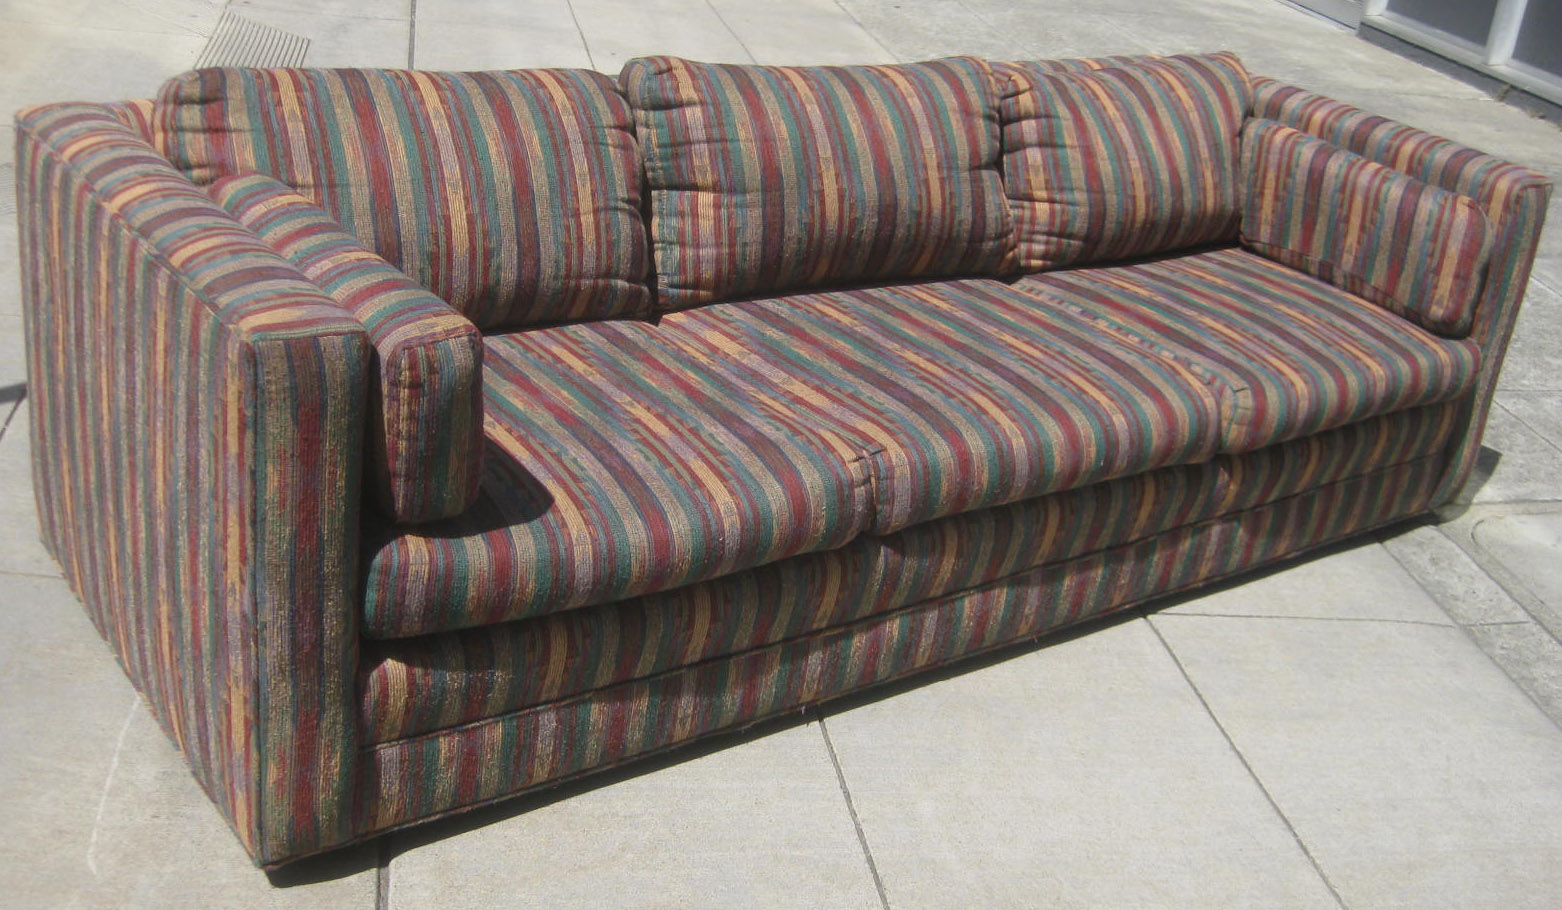 70s Sofa Bernhardt London Club Price Uhuru Furniture And Collectibles Sold Sizzling 3970s